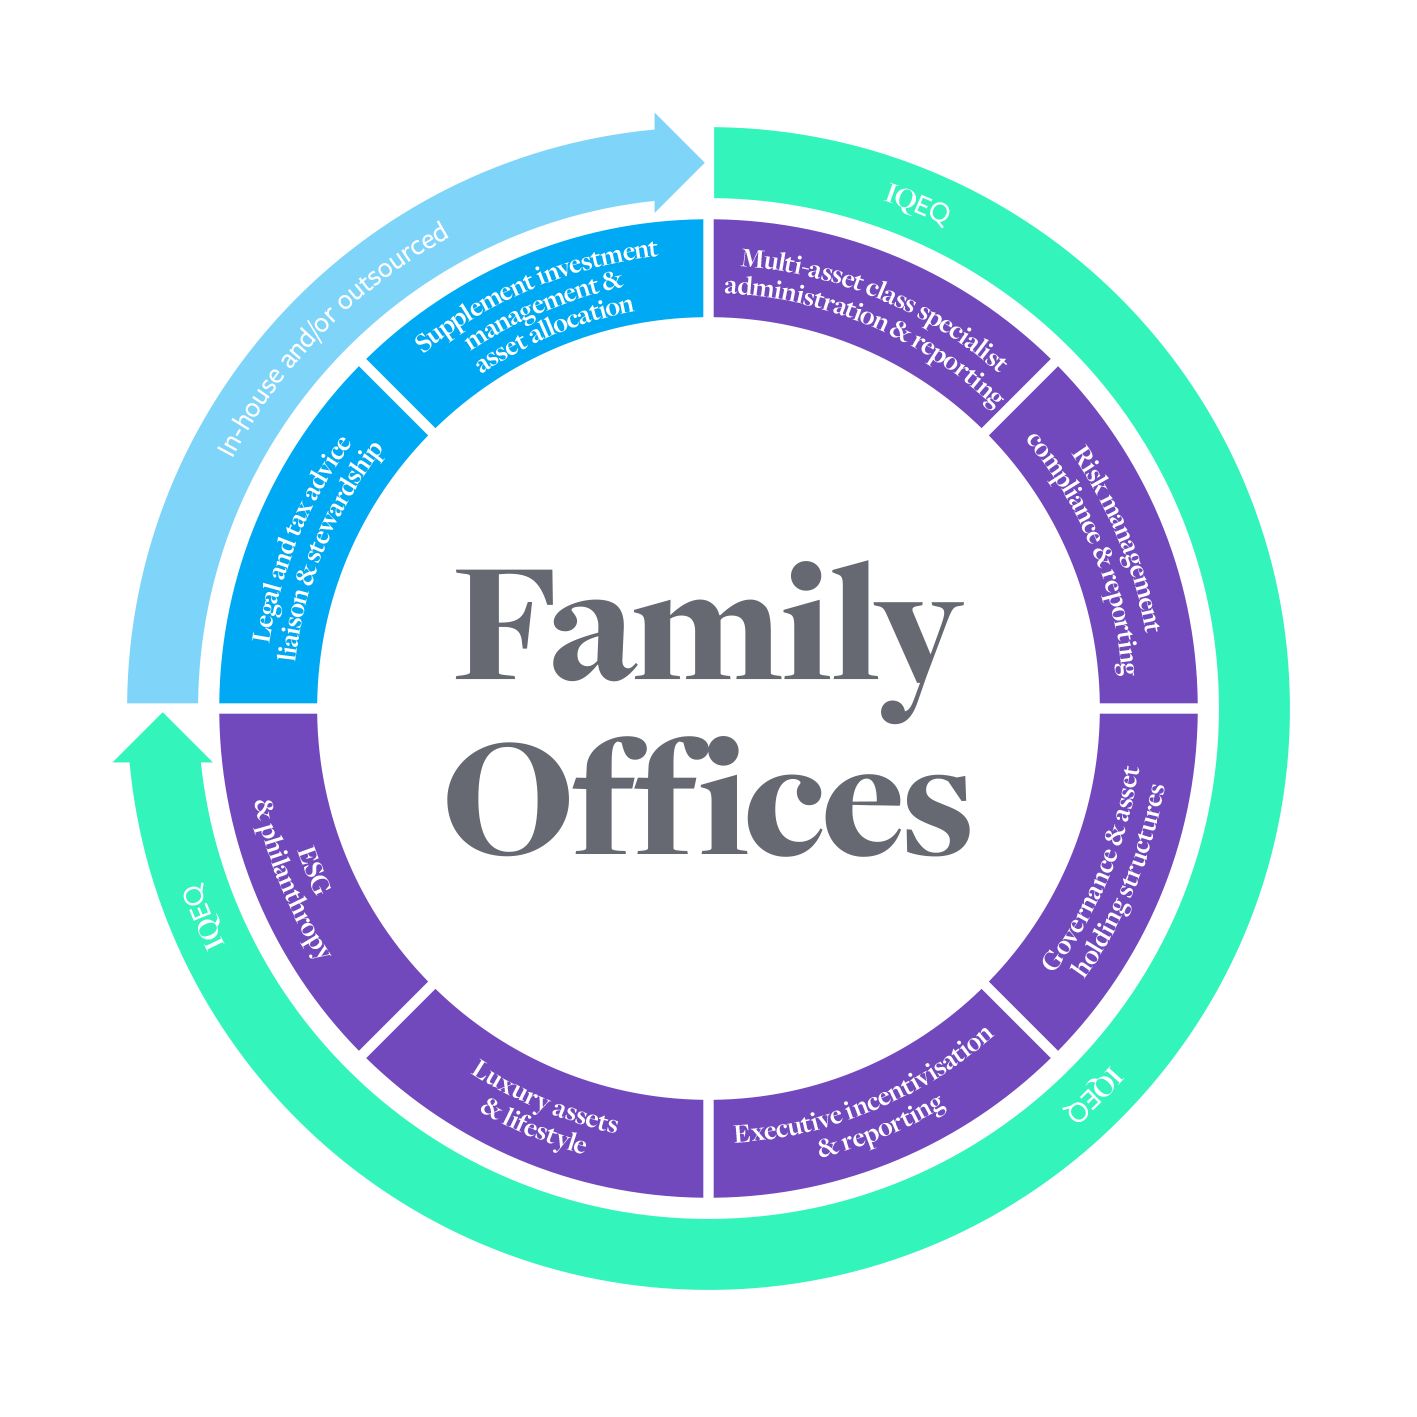 Family office services wheel